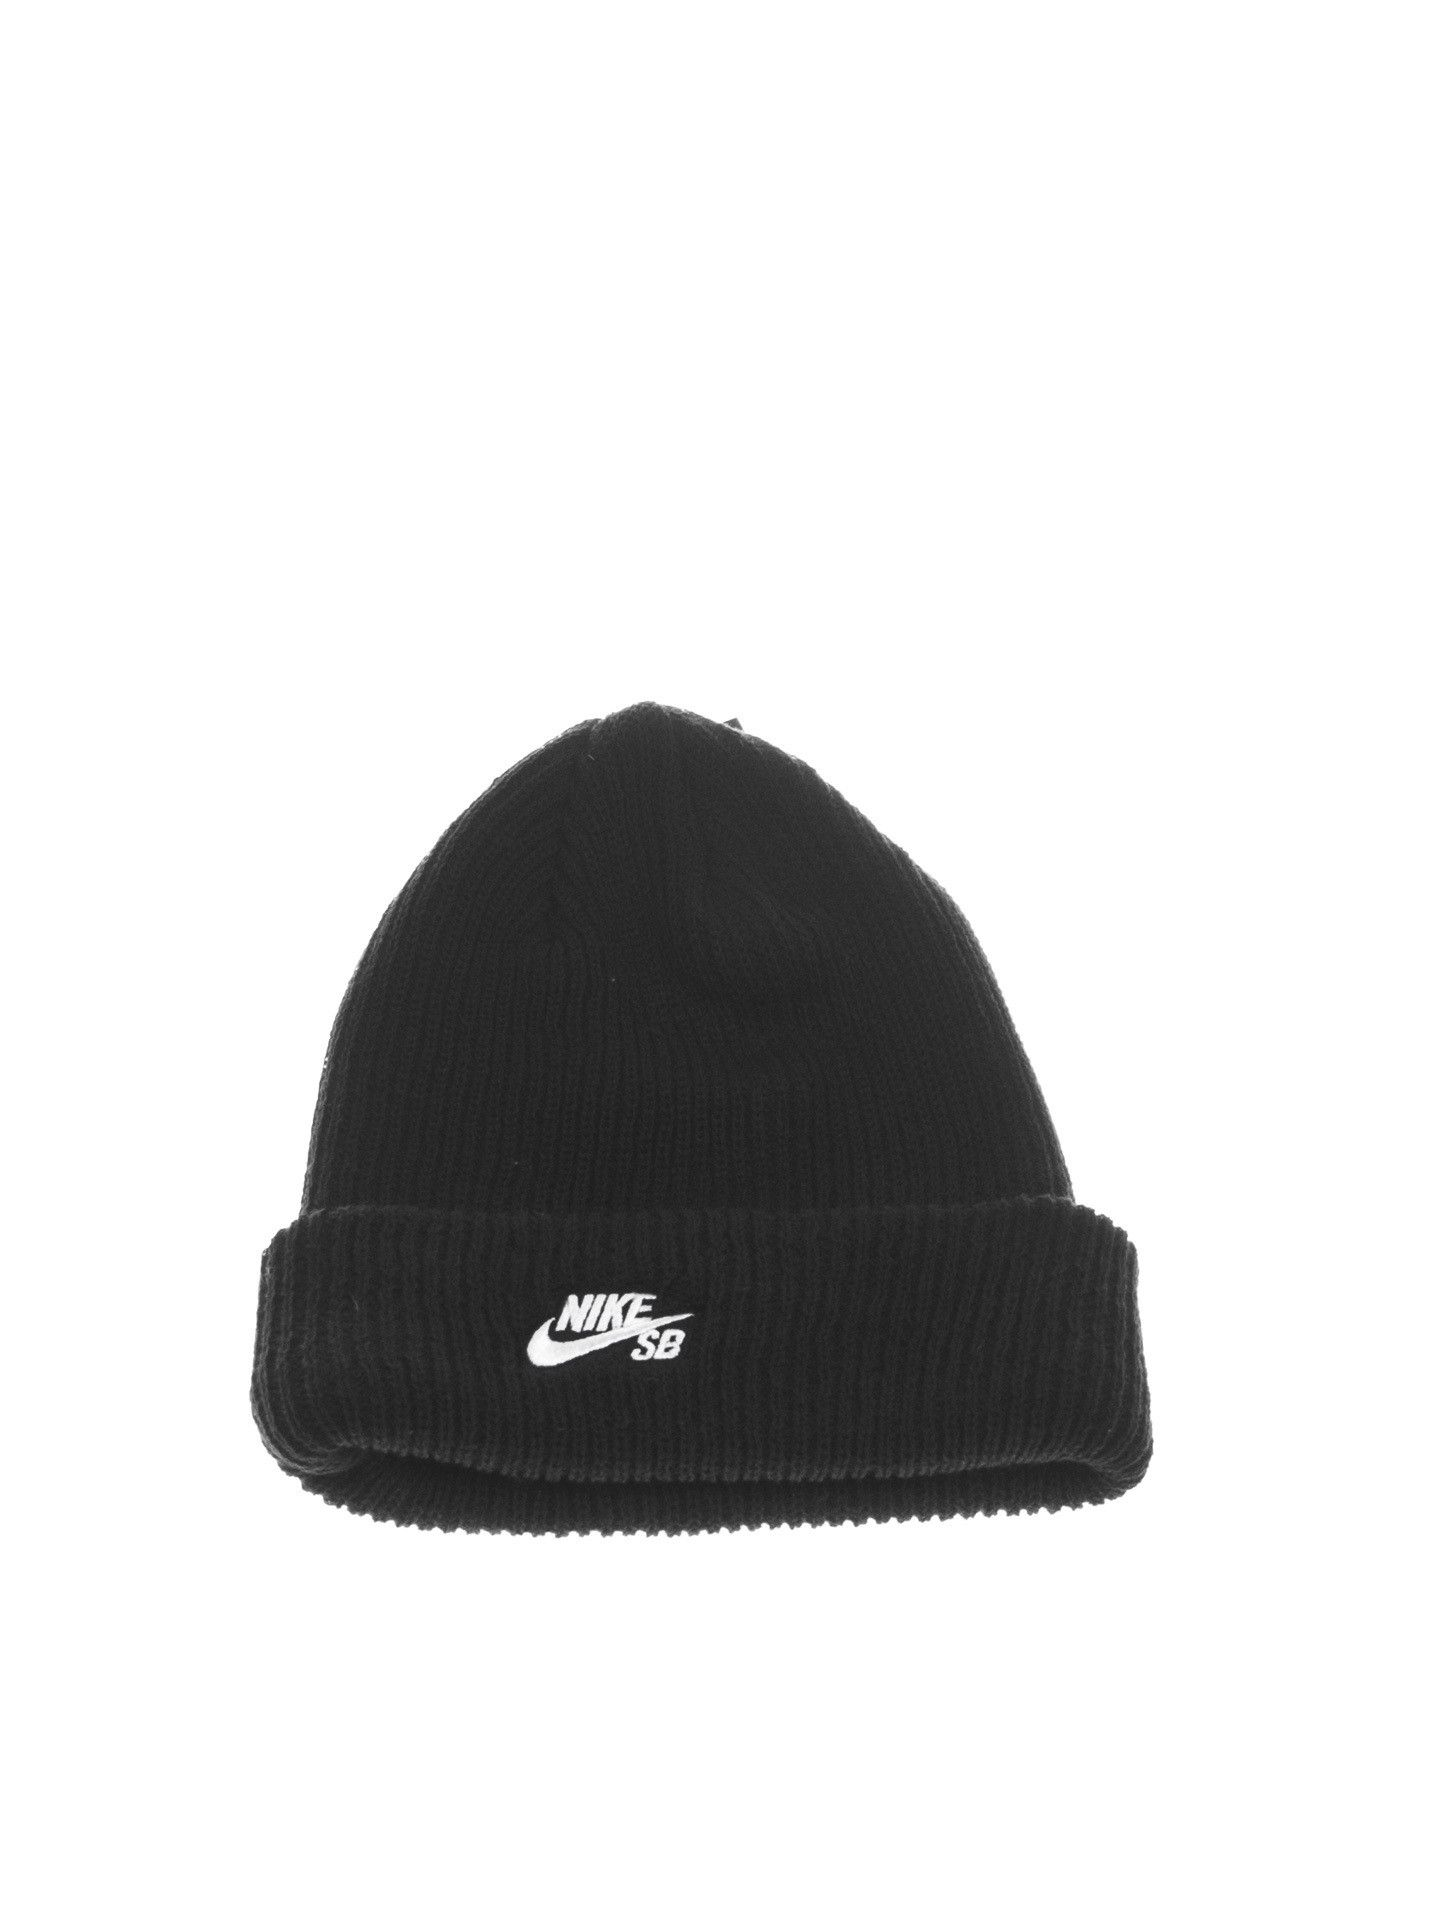 Nike SB Fisherman Beanie Black White  240f835064bb